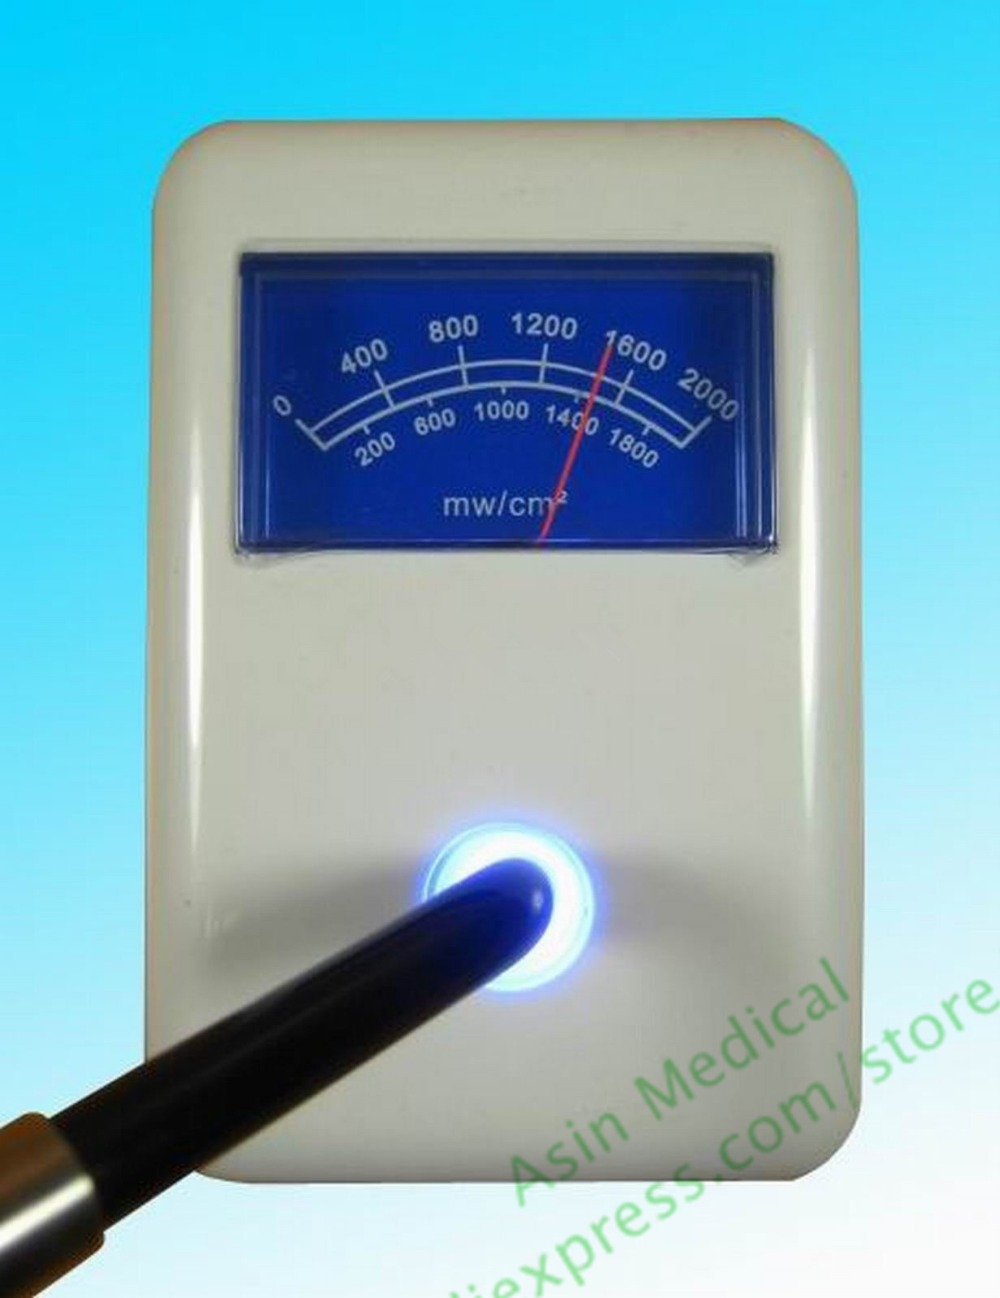 Light Cure Power Curing Light Tester Led curing Light Meter effect on composite polymerisation by light curing units invitro study